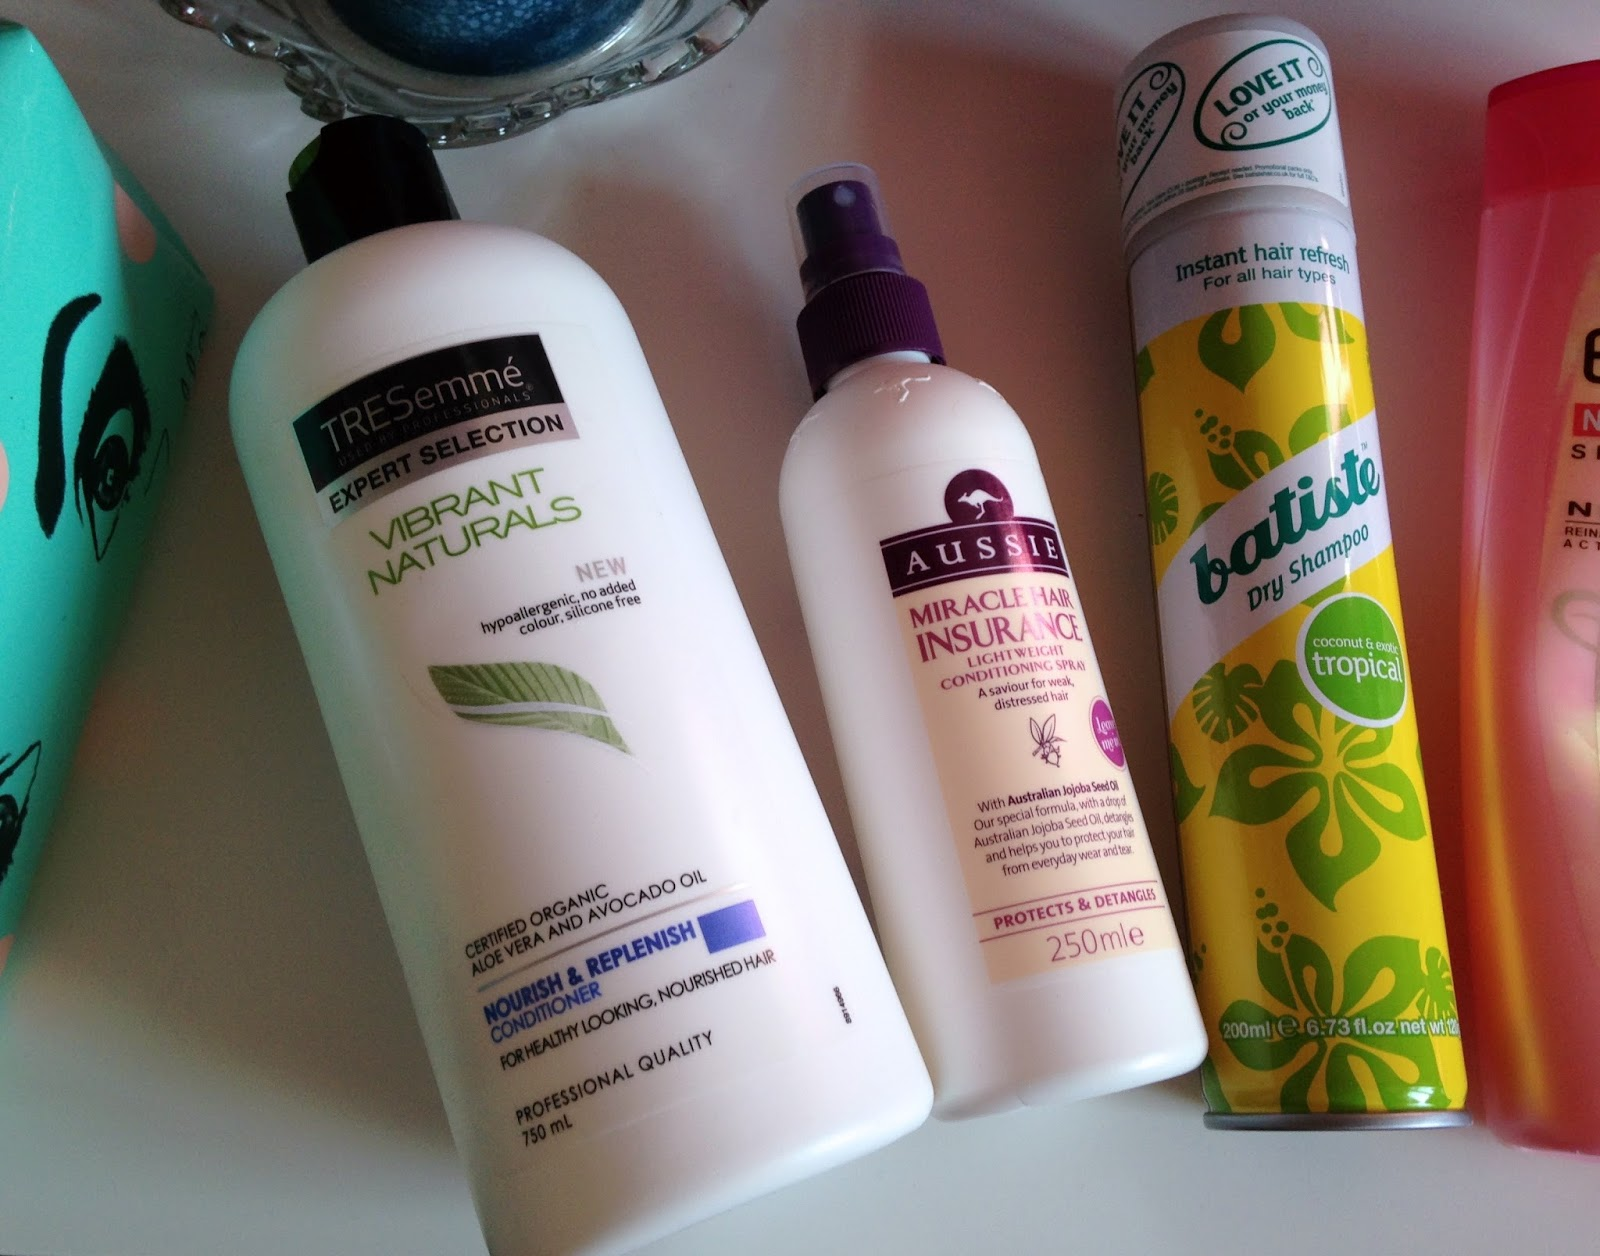 TRESemmé Vibrant Naturals Aussie Miracle Hair Insurance Batiste Tropical